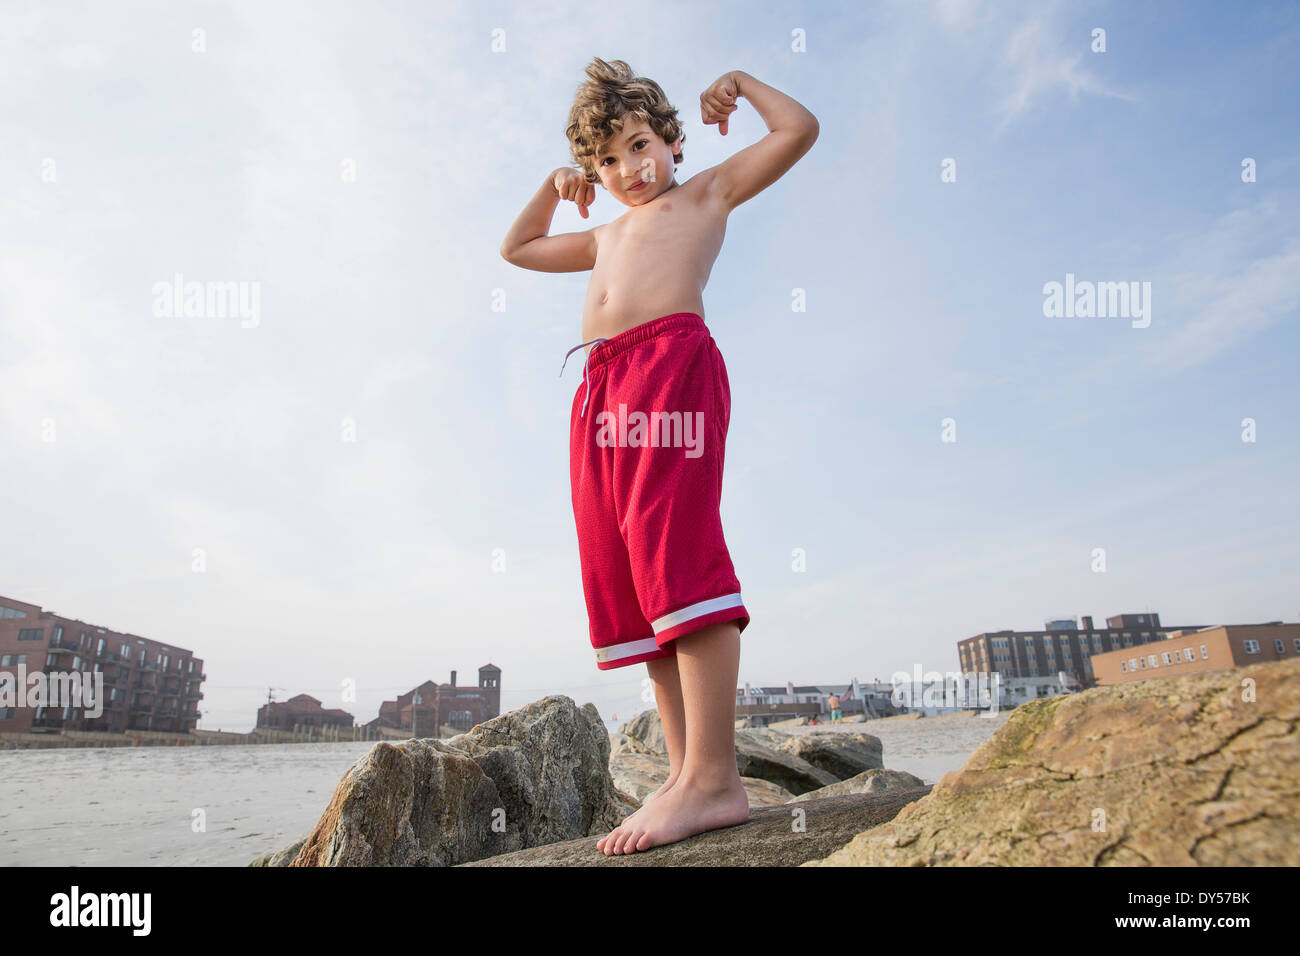 Boy at the coast showing off his arm muscles, Long Beach, New York State, USA - Stock Image